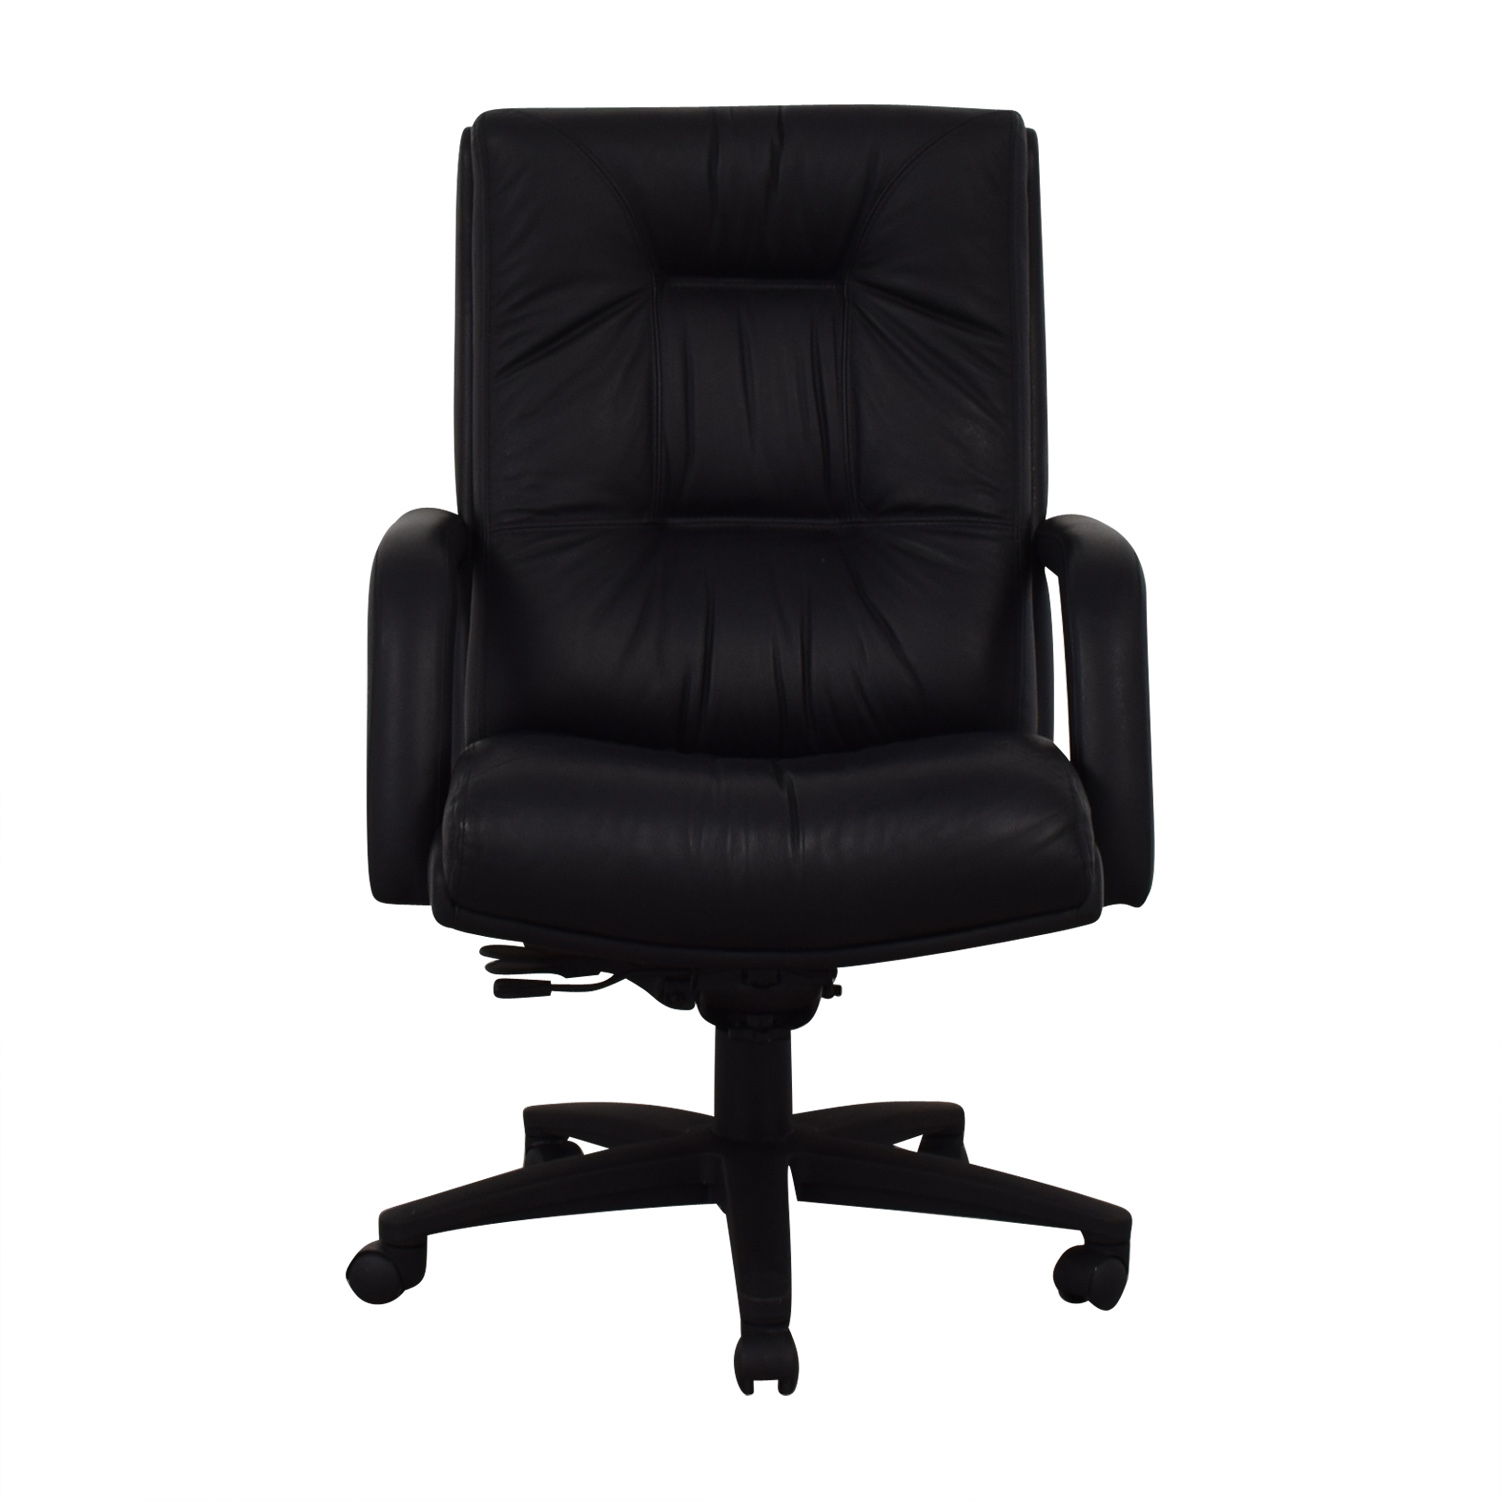 Office Chair with Armrests / Chairs